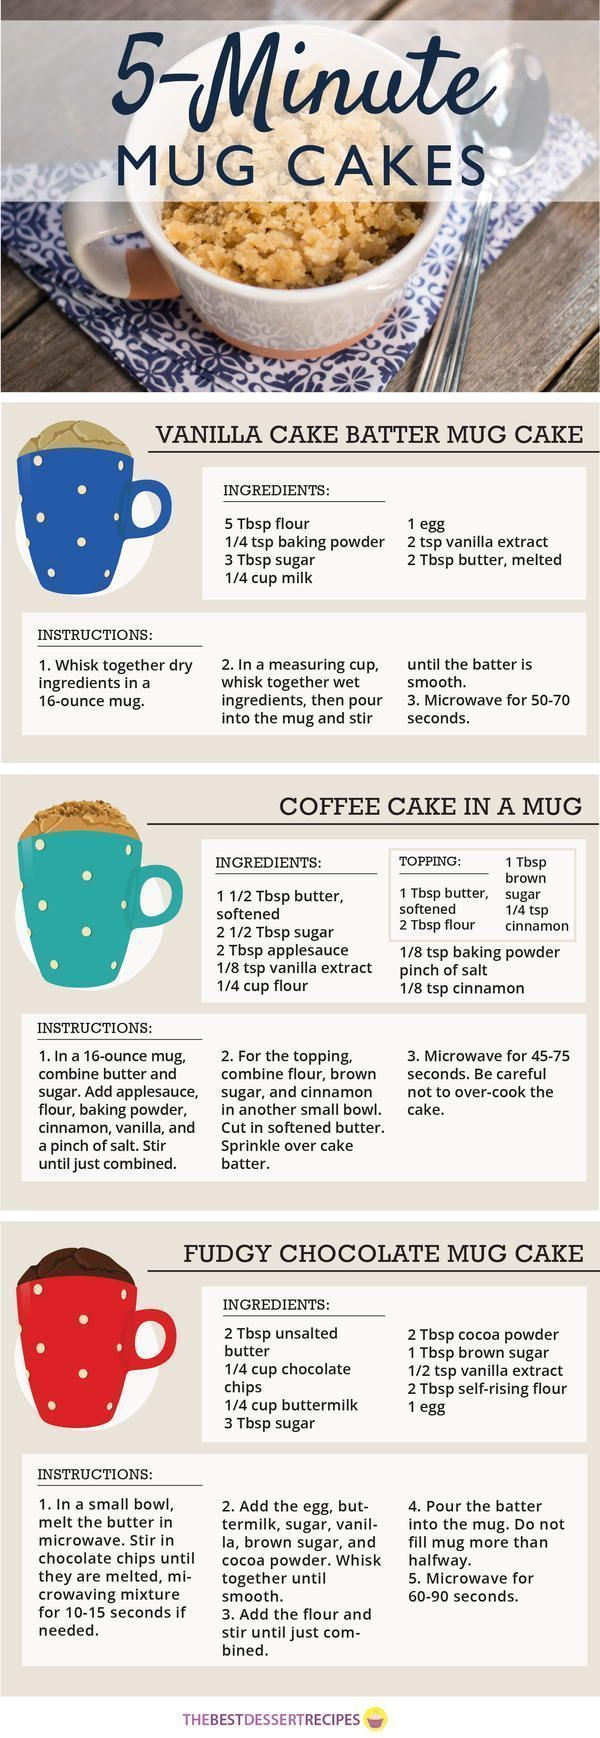 18 Mug Cake Recipes perfect for the new Pampered Chef Ceramic Egg Cooker! Order at www.pamperedchef.biz/tracyderoos Great gift idea!